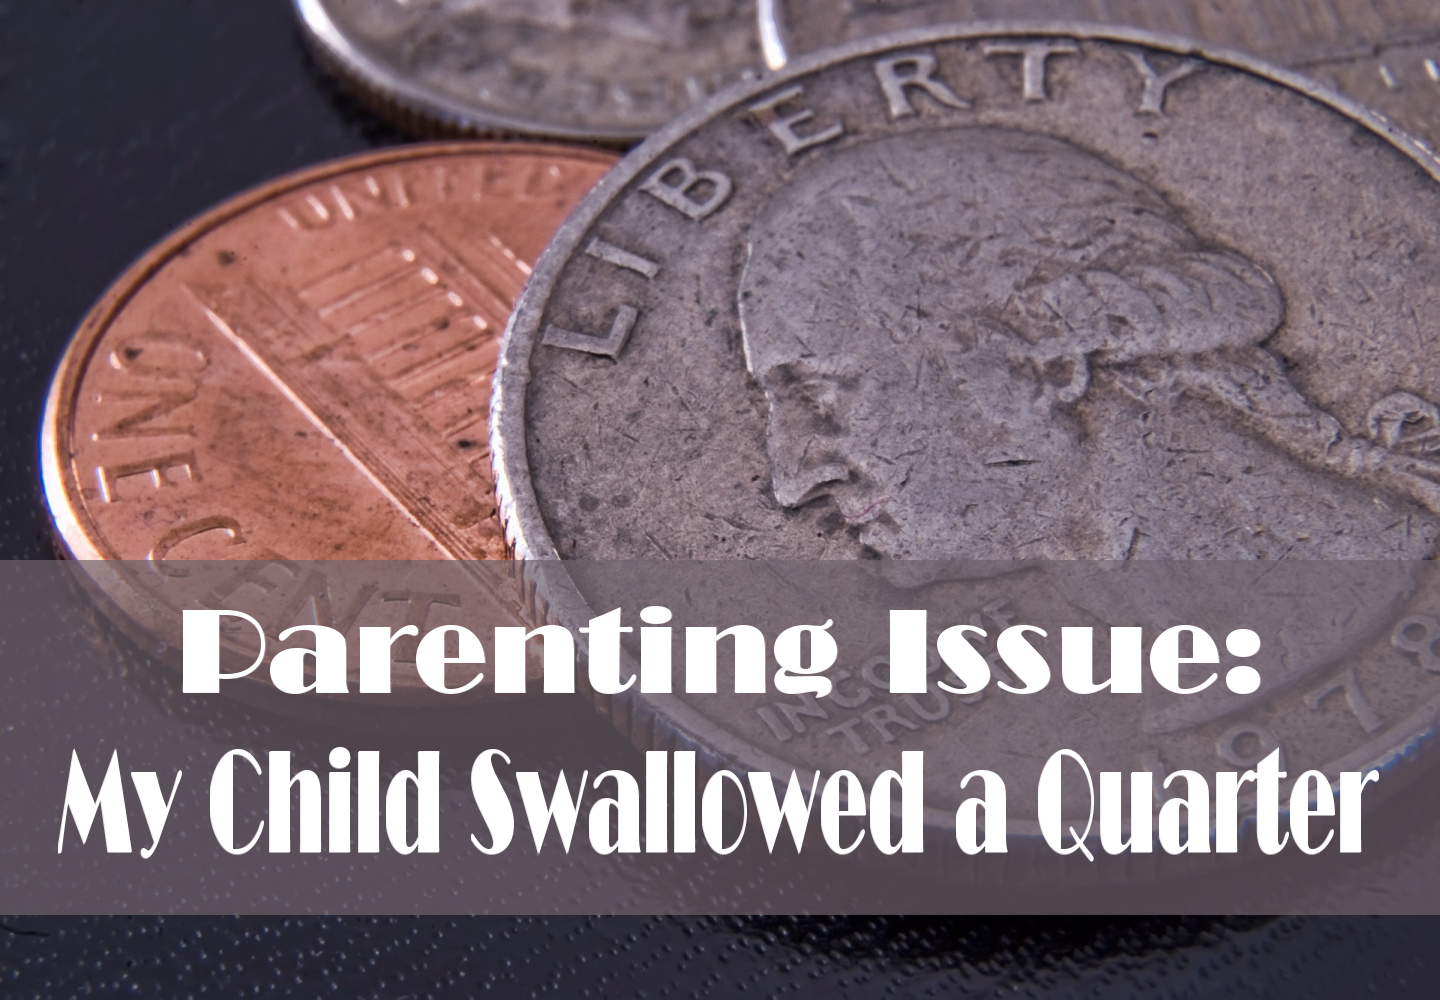 My Child Swallowed a Quarter